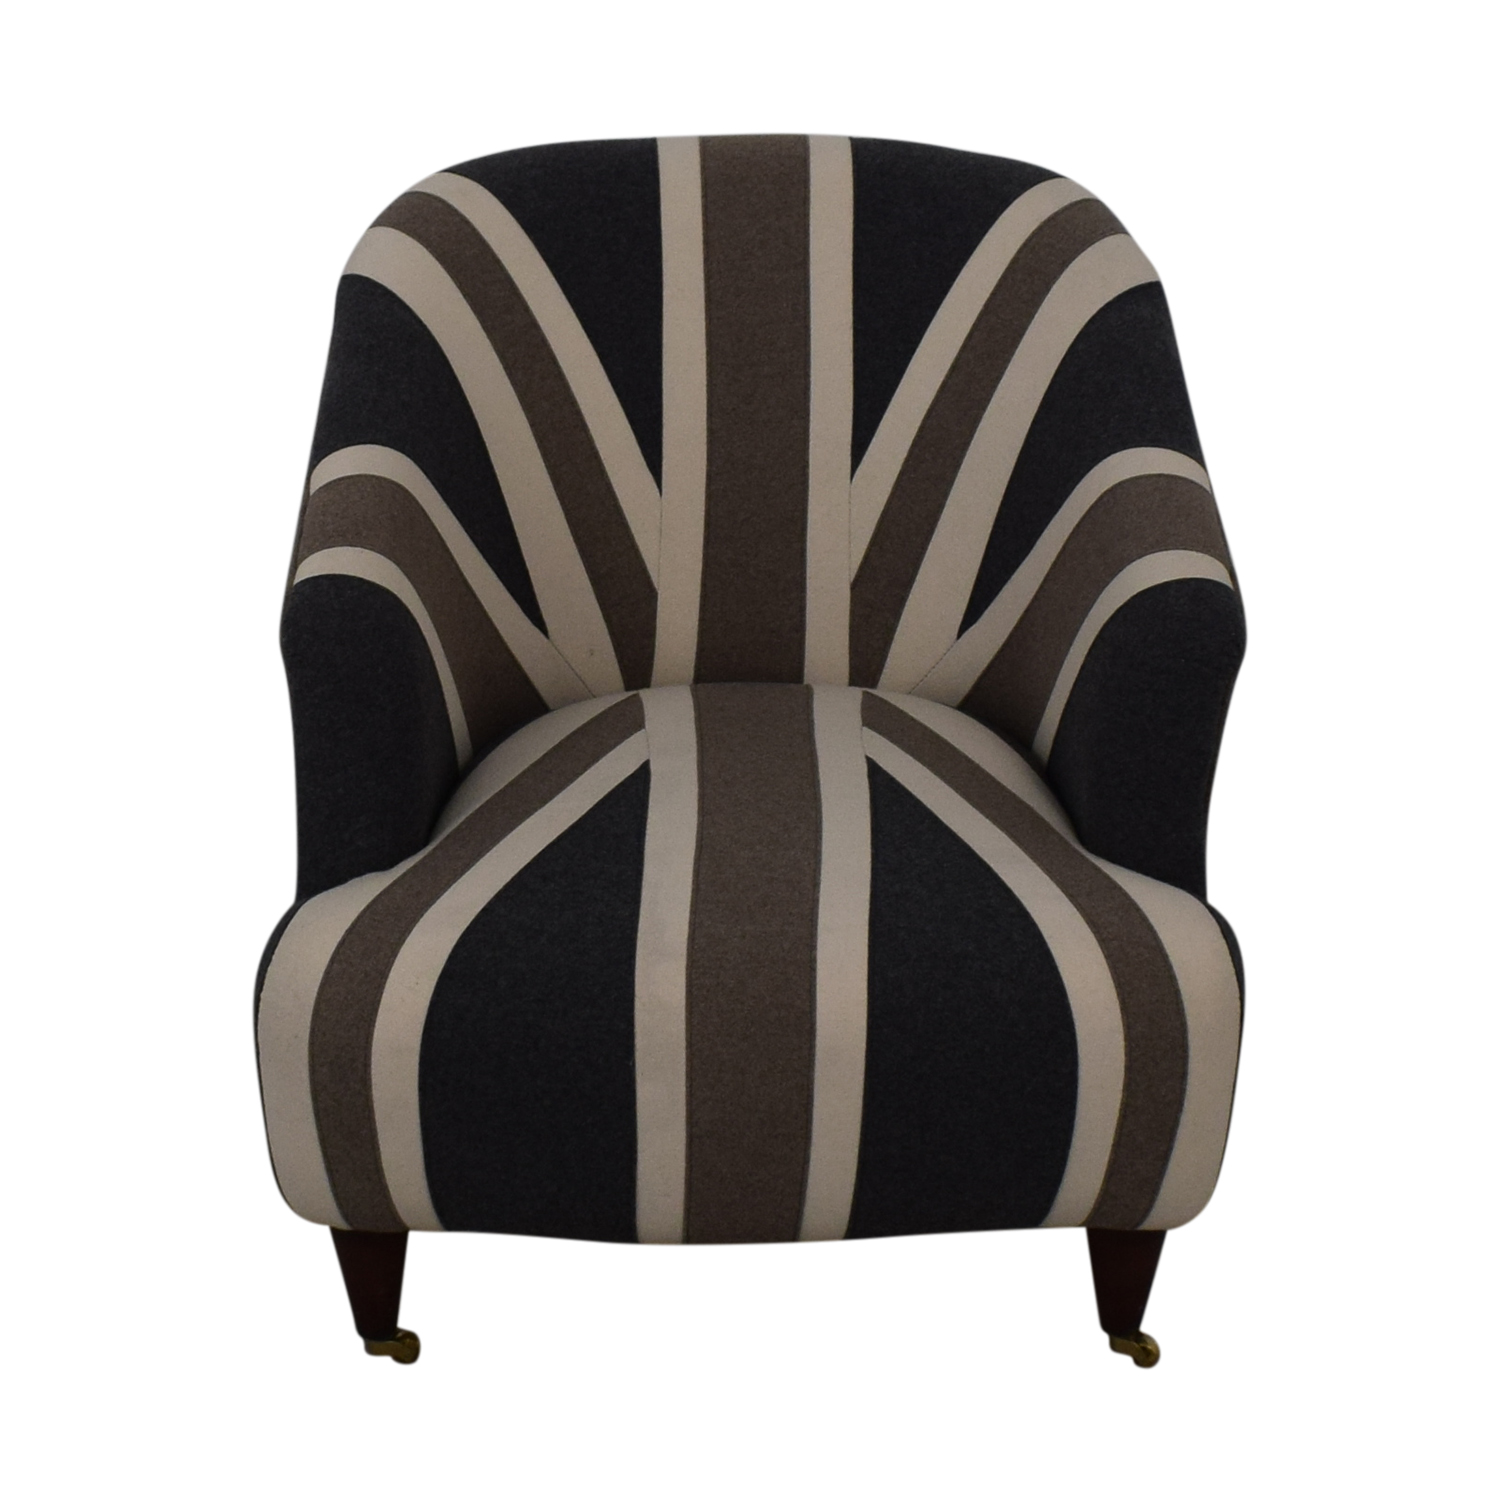 Union Jack Chair / Chairs